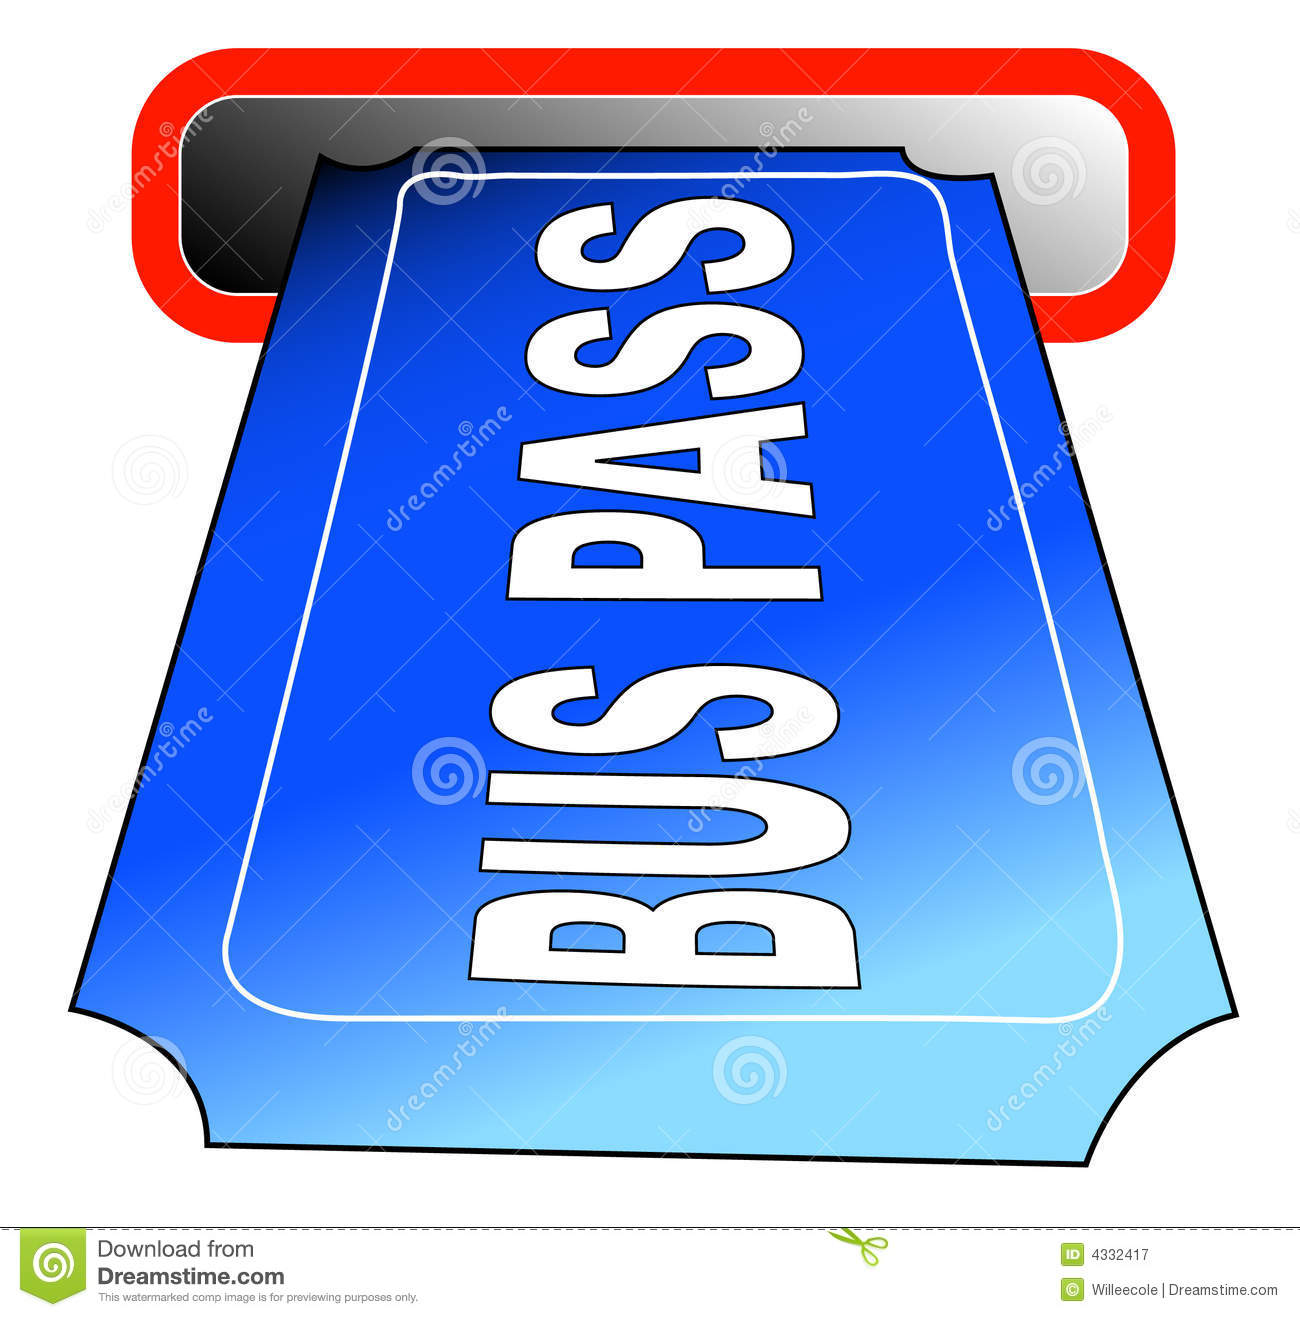 Bus Pass Royalty Free Stock Photography - Image: 4332417